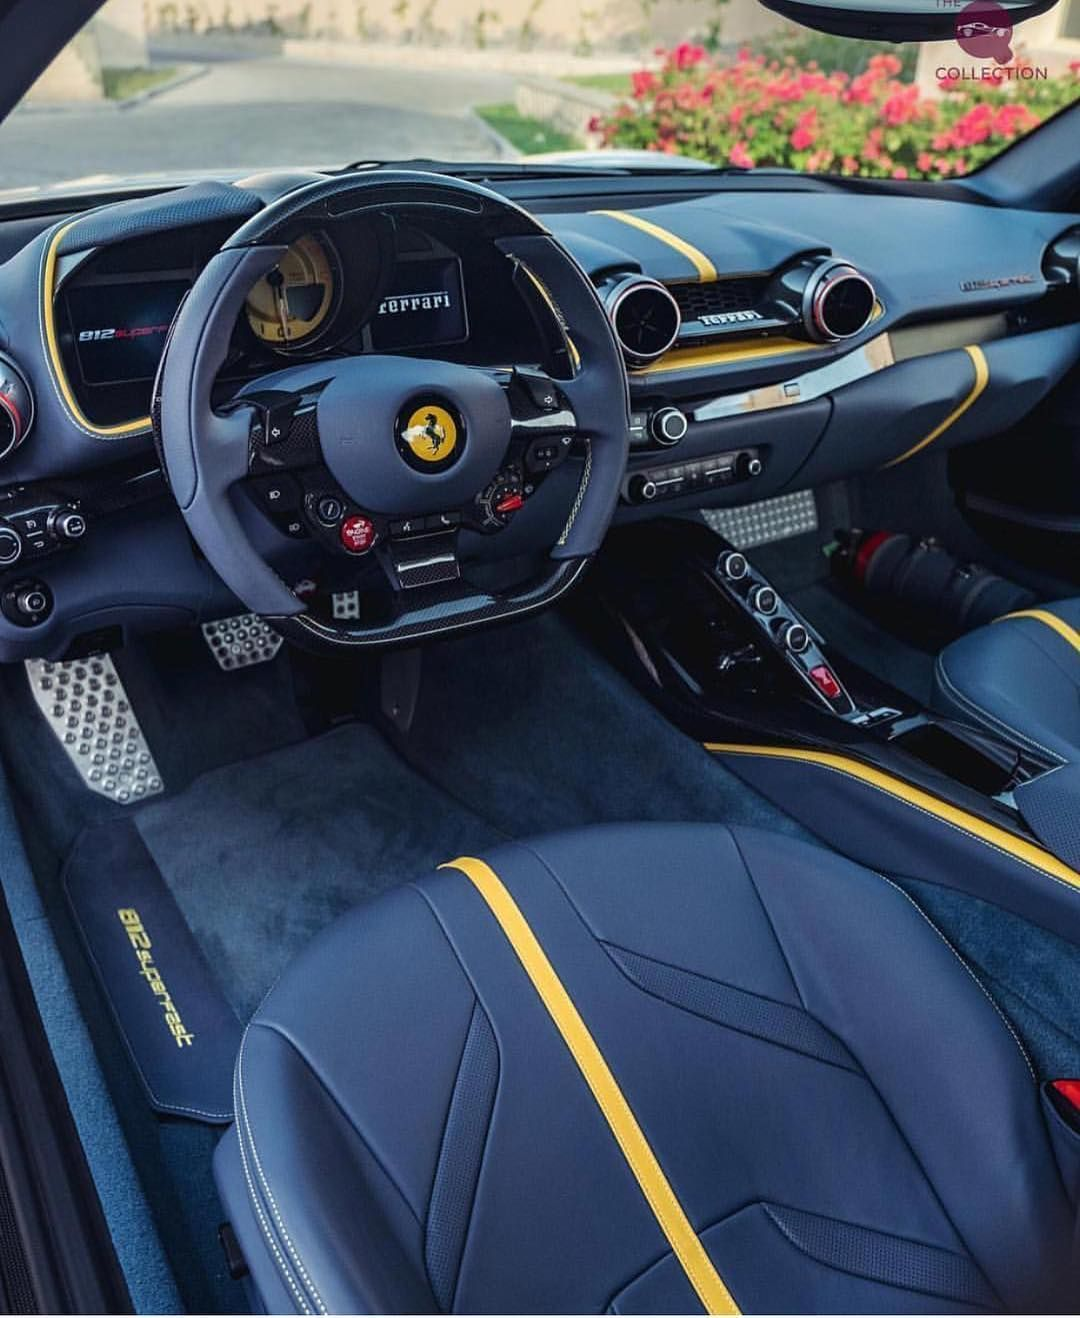 The Most Luxury Cars In The World With Best Photos Of Cars New Sports Cars Ferrari Luxury Cars